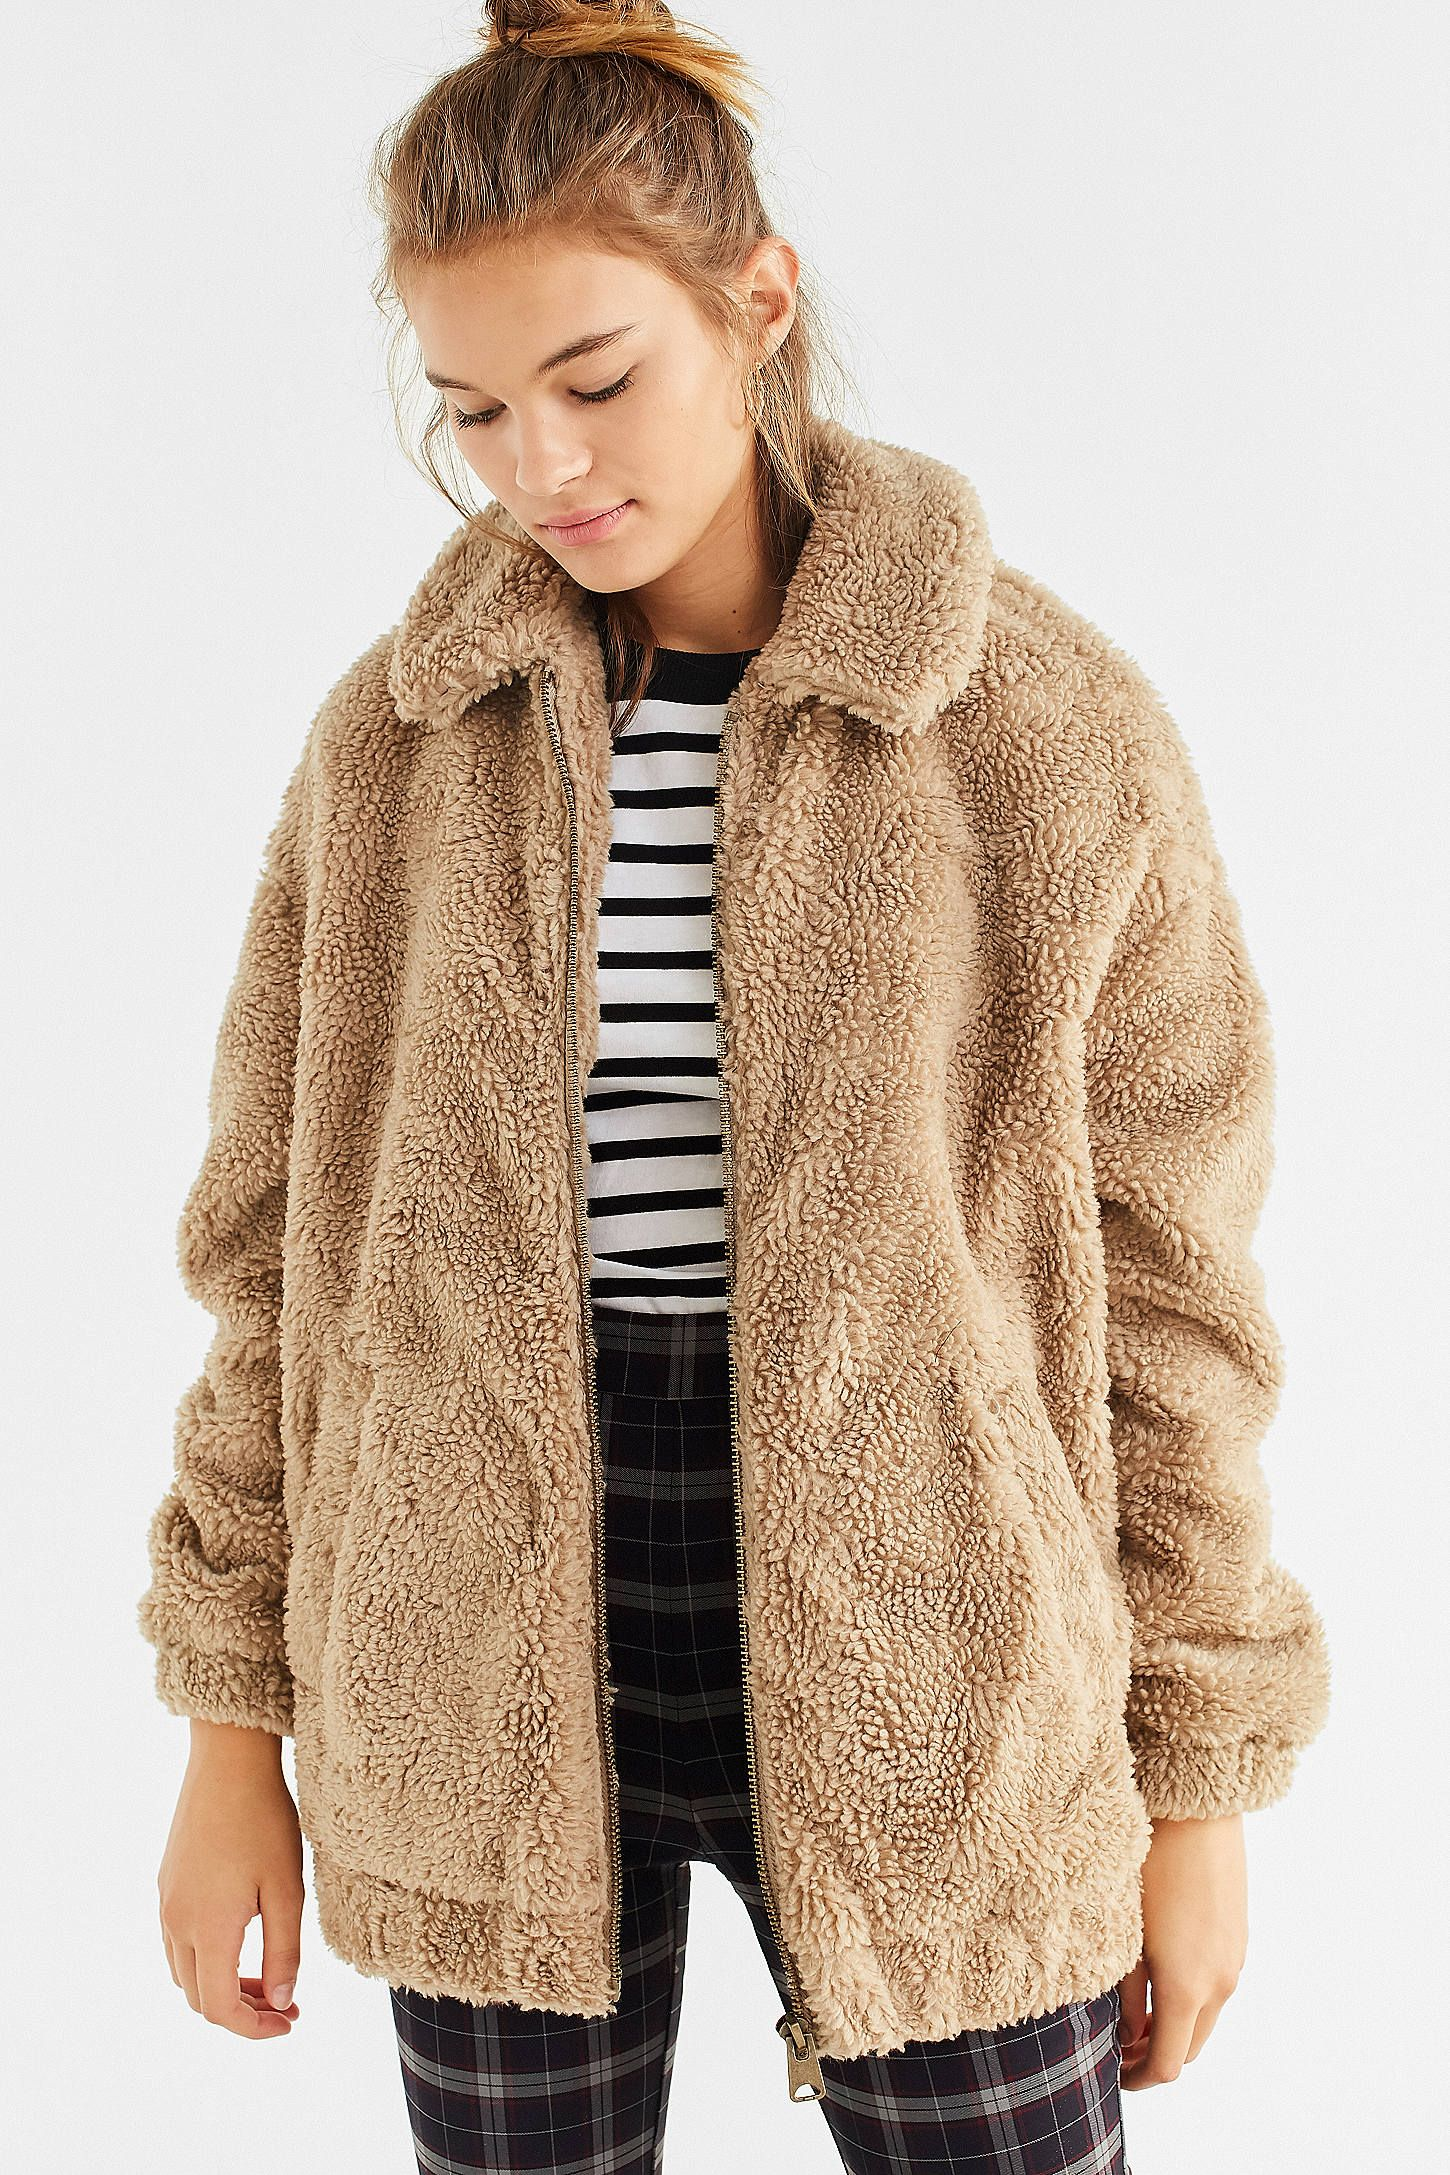 Shop Light Before Dark Oversized Sherpa Zip-Up Jacket at Urban Outfitters  today. We carry all the latest styles ba08866fa